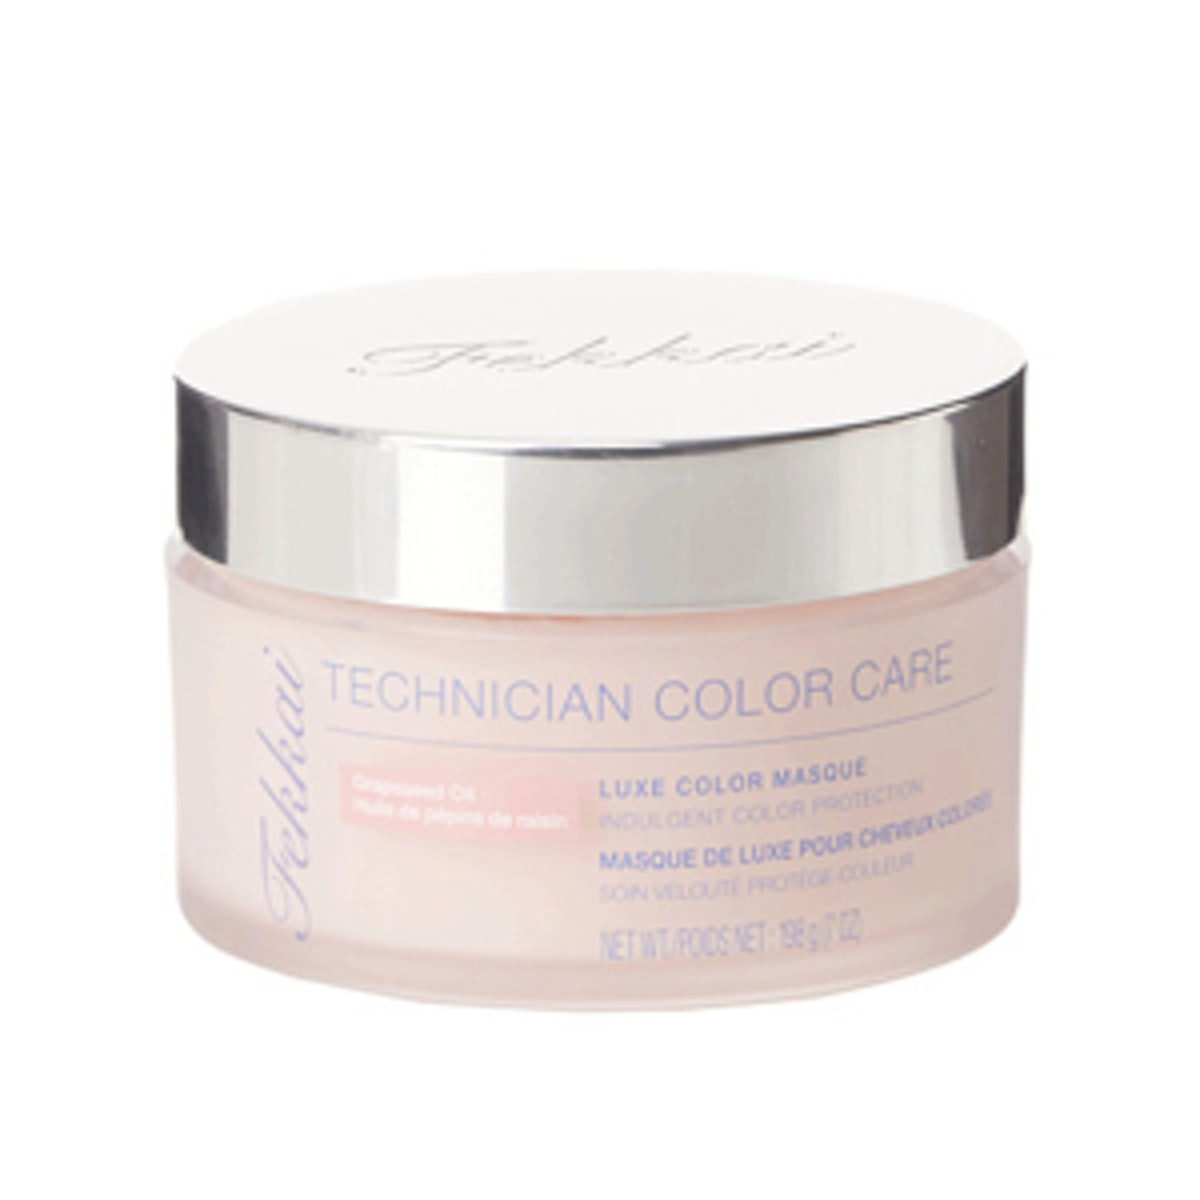 Color Care 3 Minute Mask